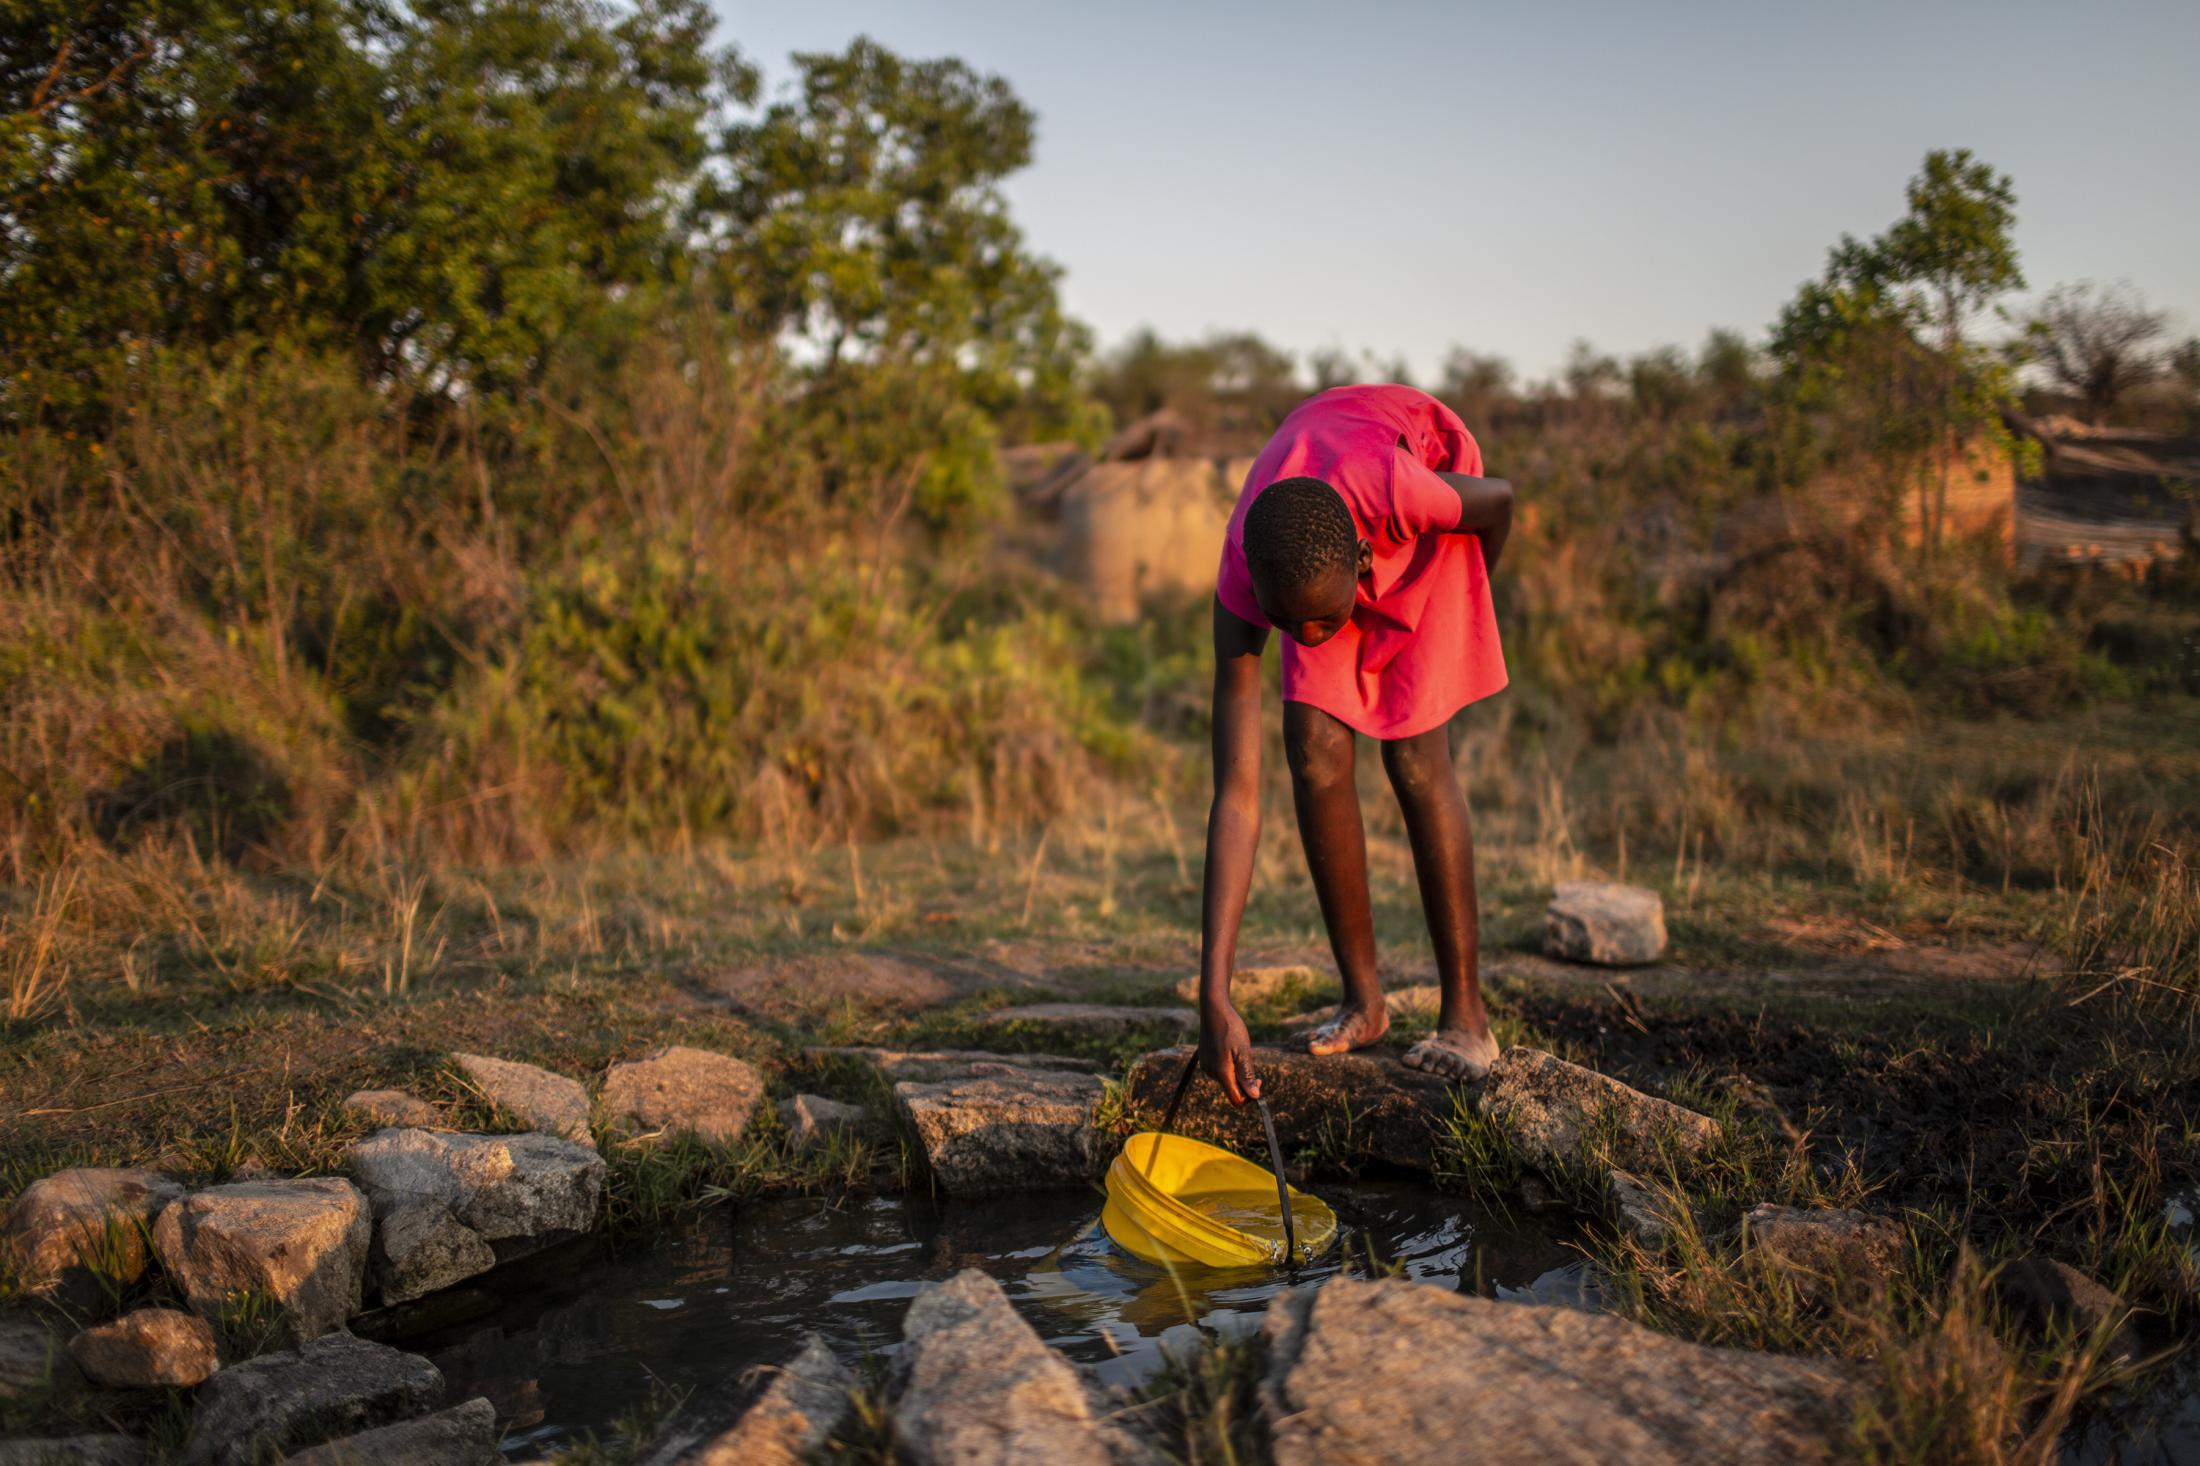 Lana Fariva (14) fills her bucket with water from a spring in Masvingo, Zimbabwe on October 07, 2019. The family has no electricity or water at home and have to walk for over a km to a spring to fetch water everyday. They have no choice but to use this for drinking and cooking as well, so it will be boiled.